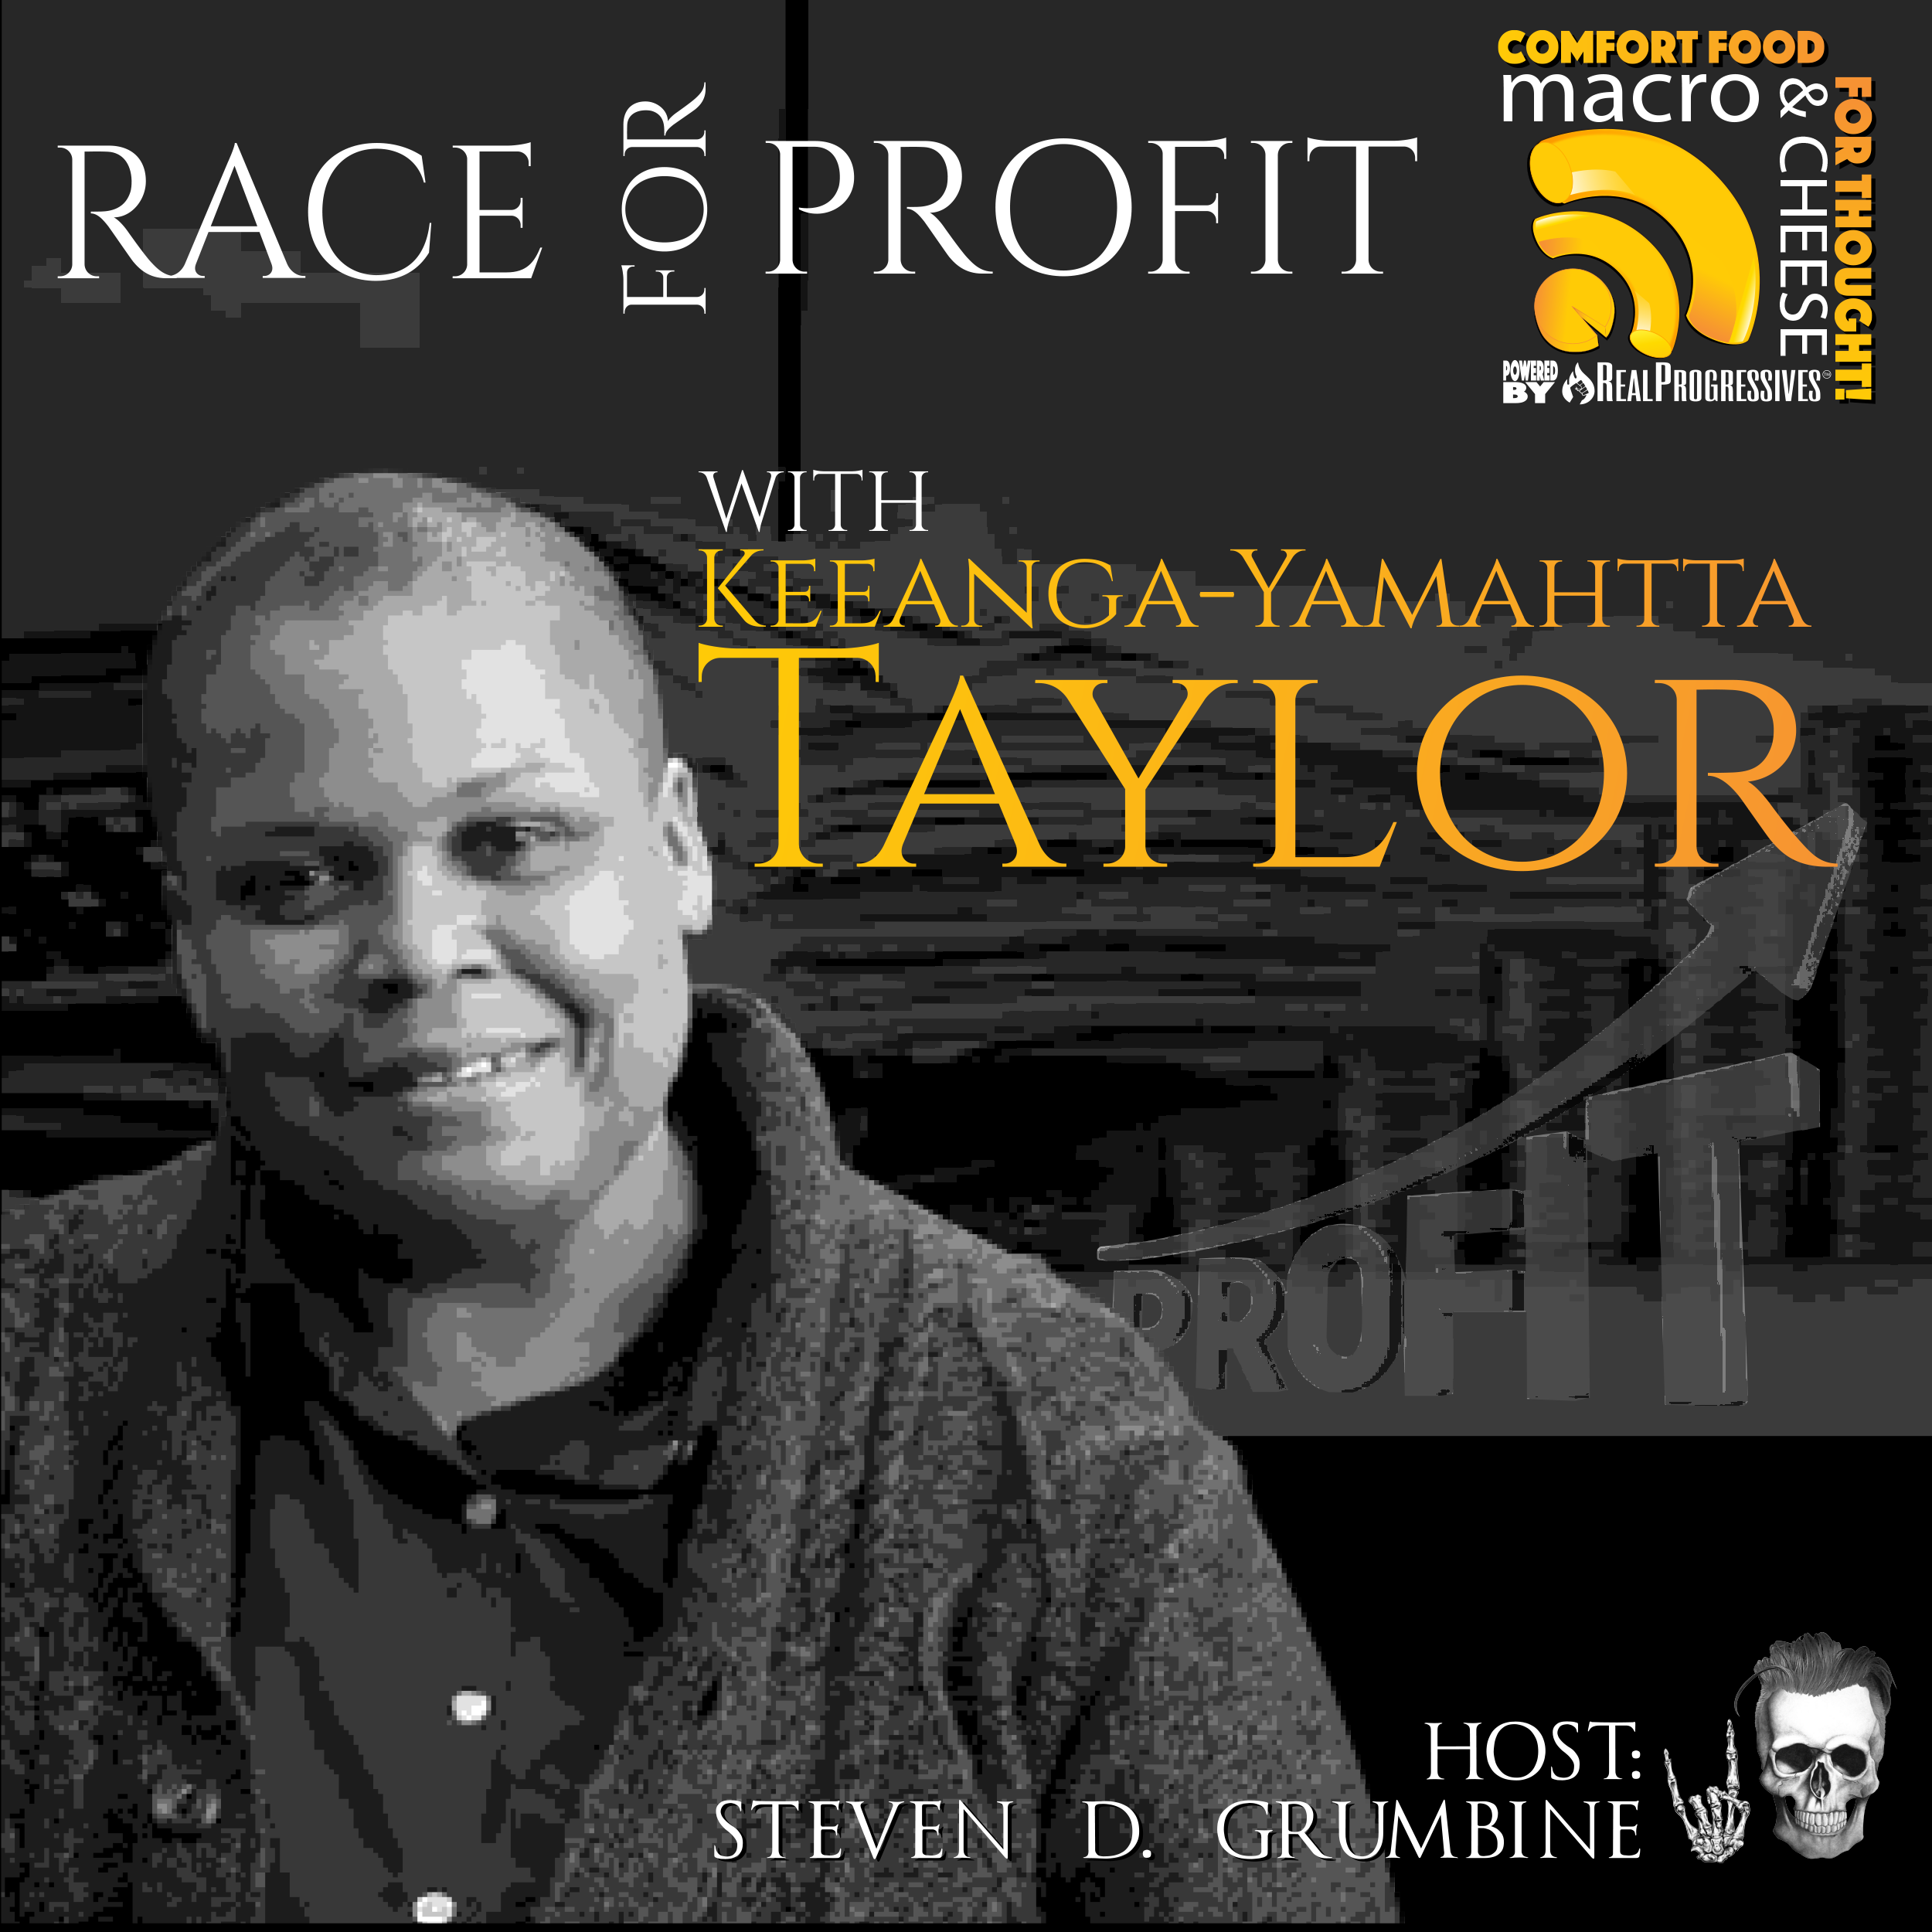 Race For Profit with Keeanga-Yamahtta Taylor